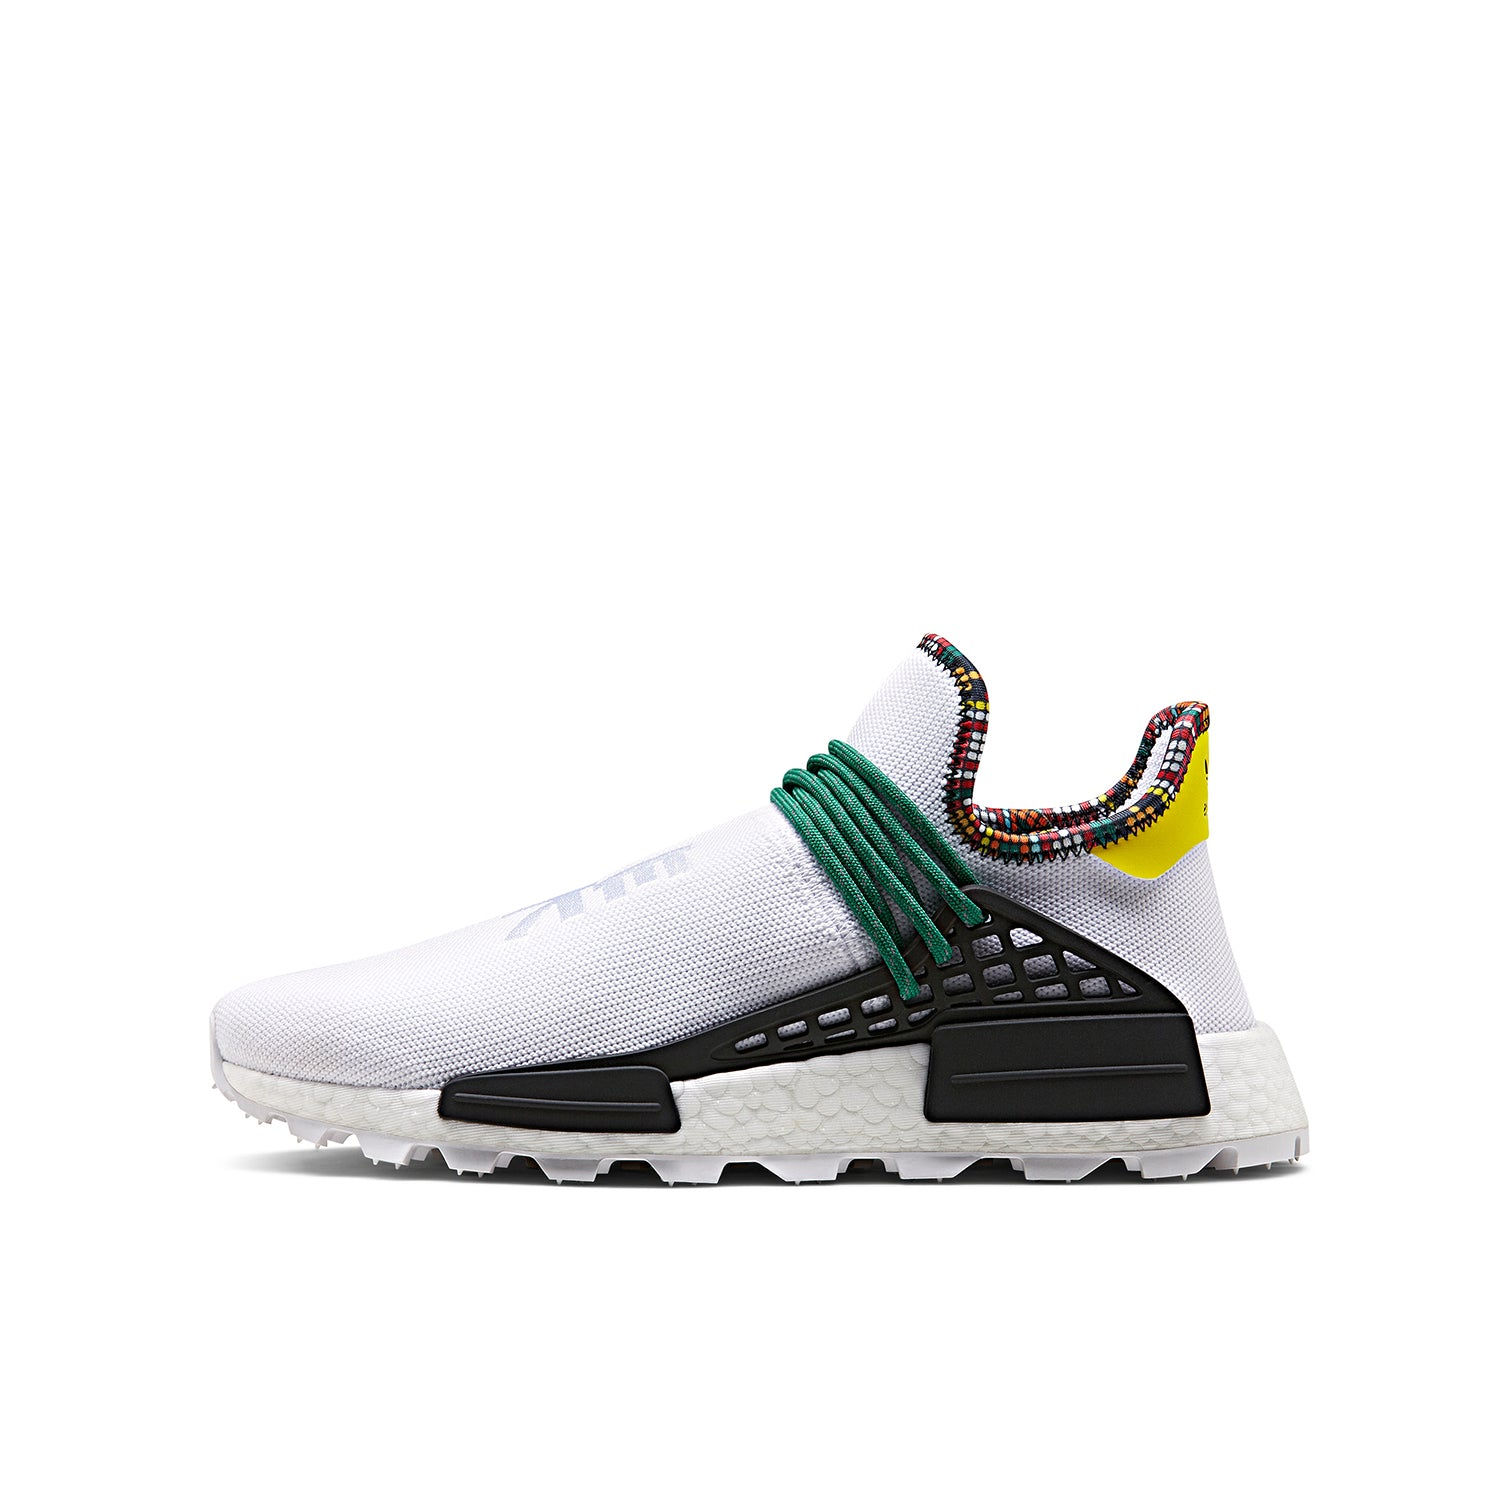 47f0e8b46447c adidas Originals x Pharrell Williams  INSPIRATION  Solar HU NMD White. Tap  to expand